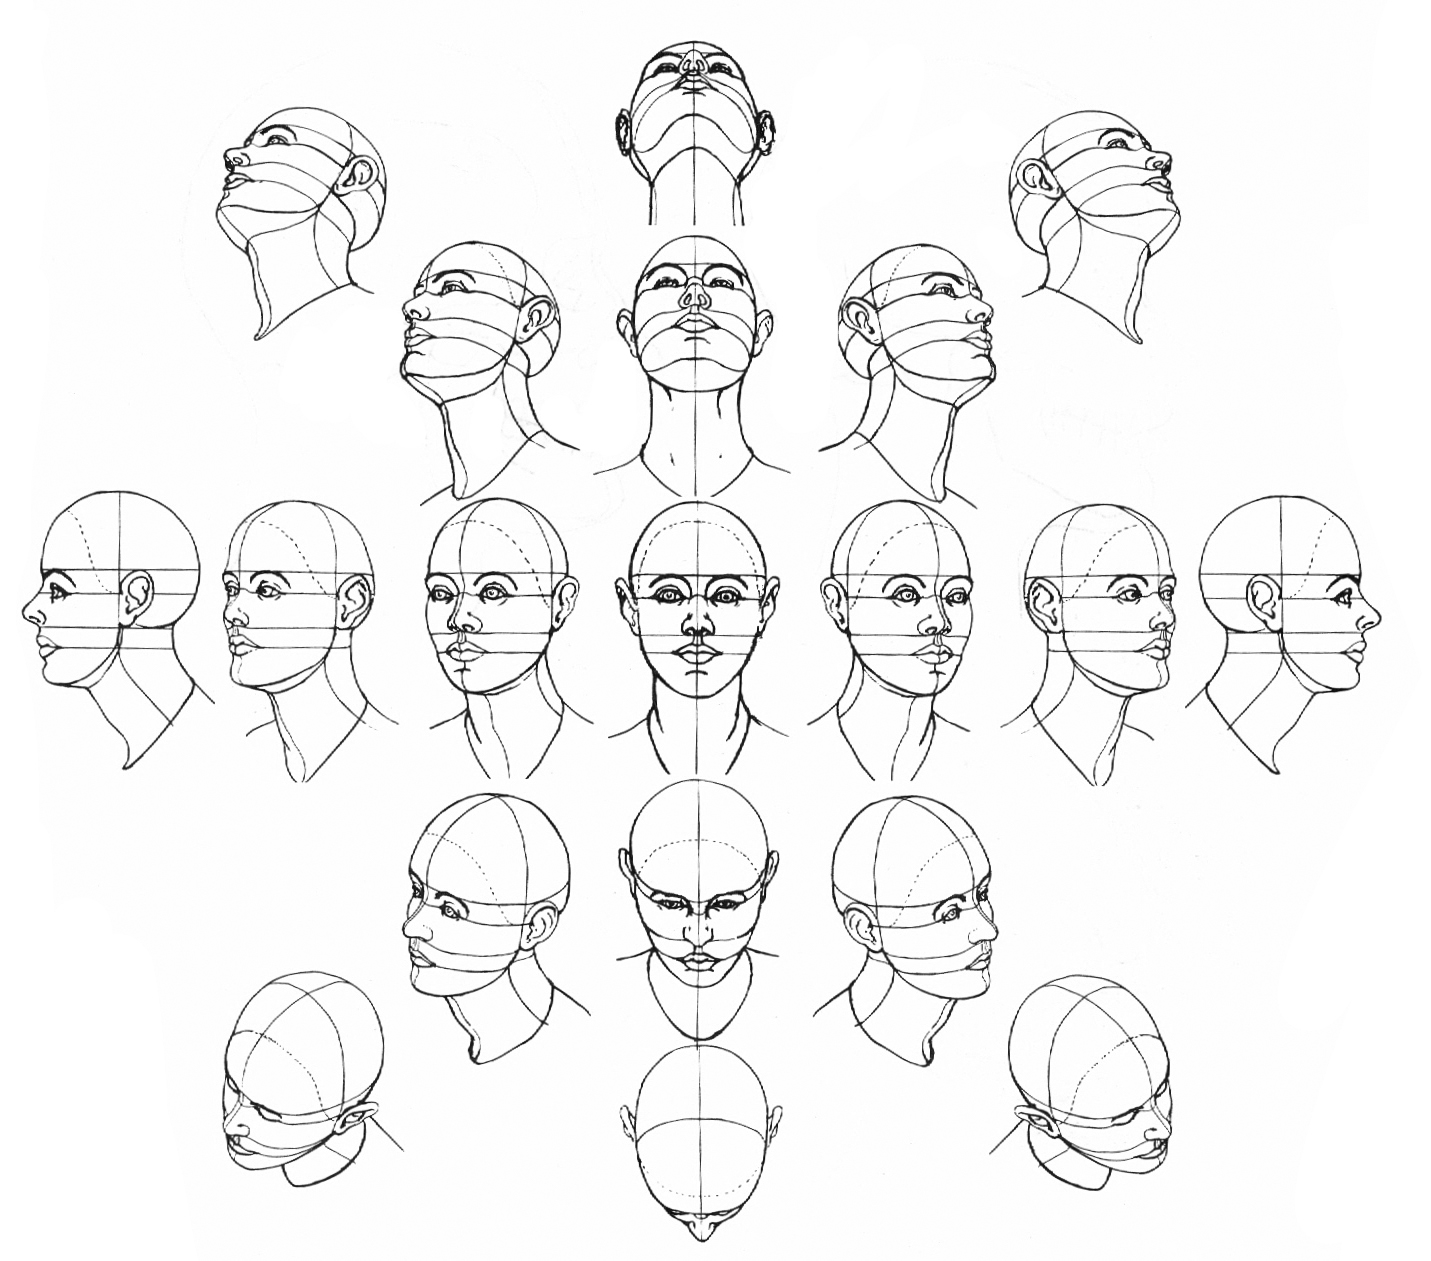 Jeff Searle Drawing The Head From Different Angles